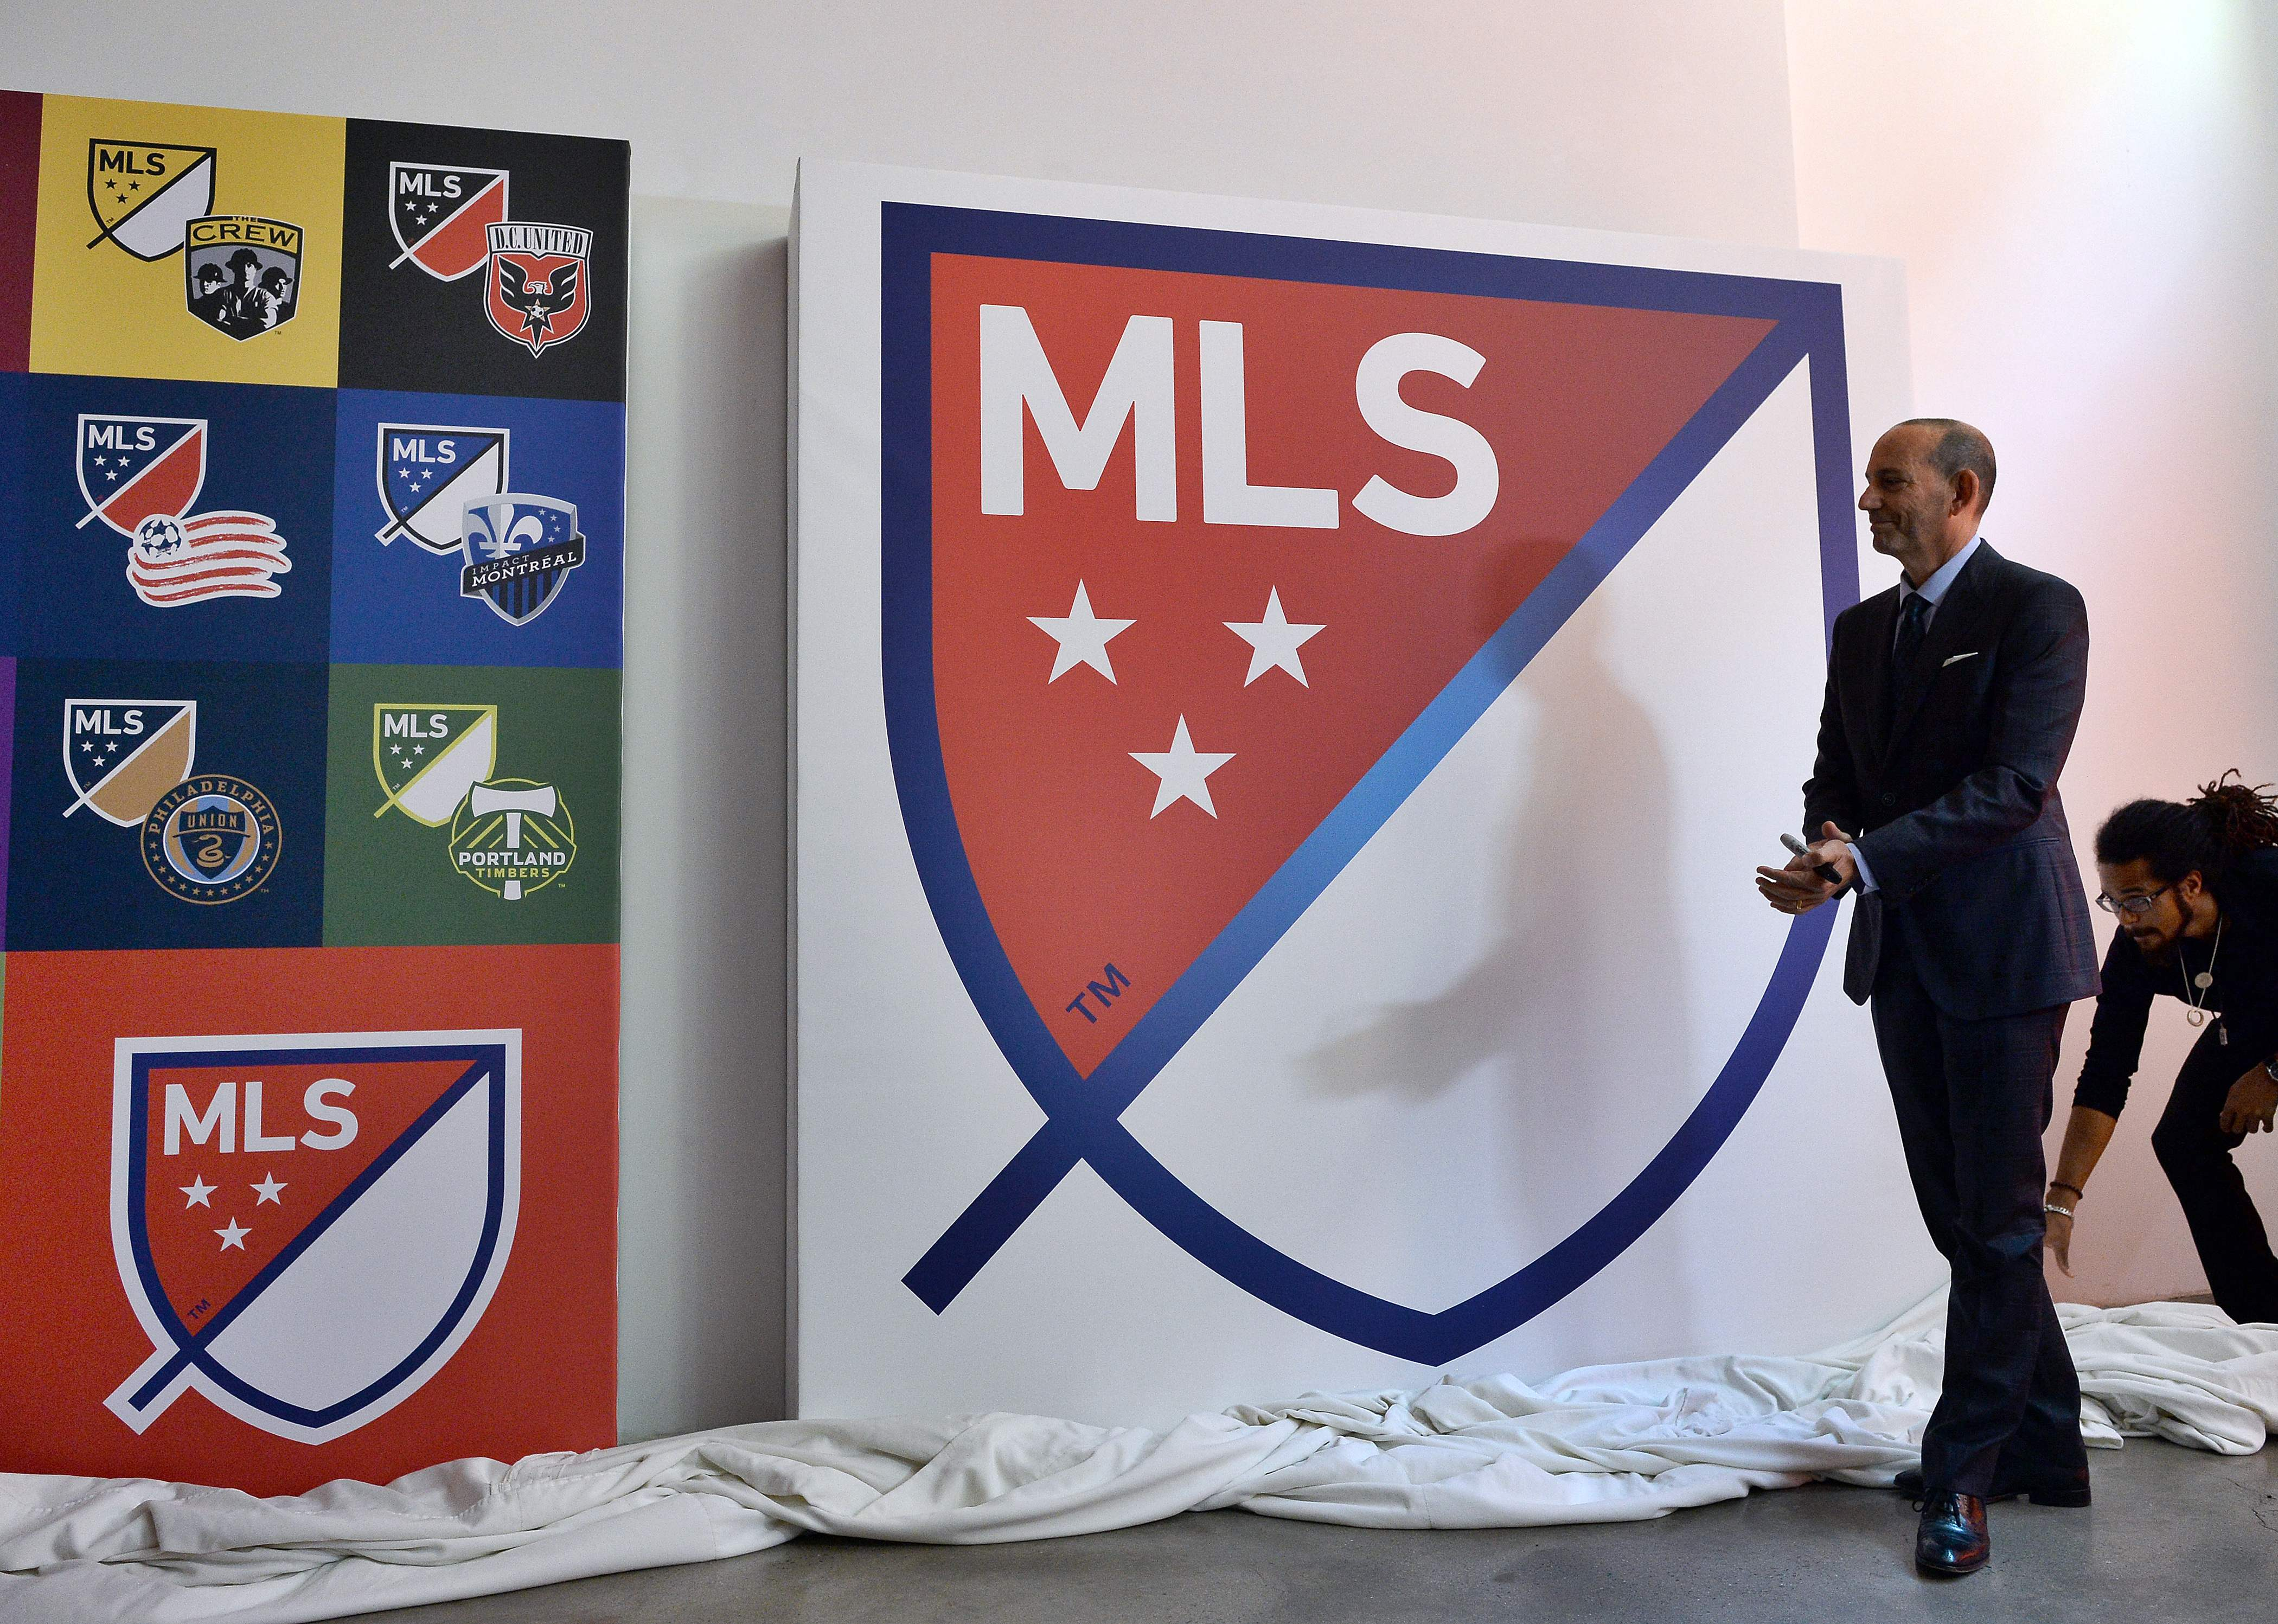 Major League Soccer is launching a lower-tier professional league aimed at developing young players from its academy system.